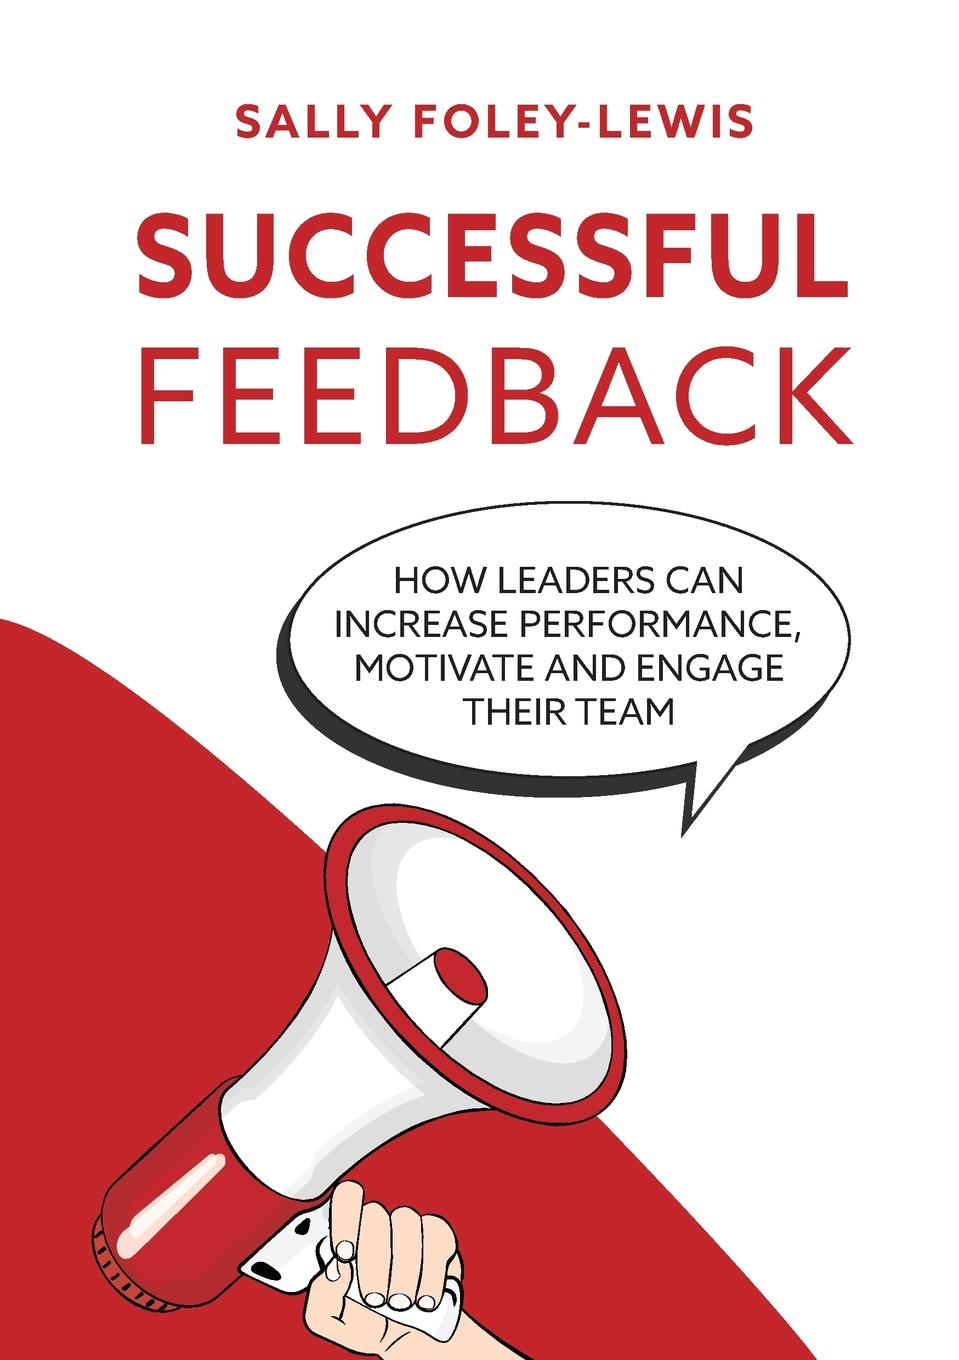 Sally Foley-Lewis Successful Feedback. How leaders can increase performance, motivate and engage their team.